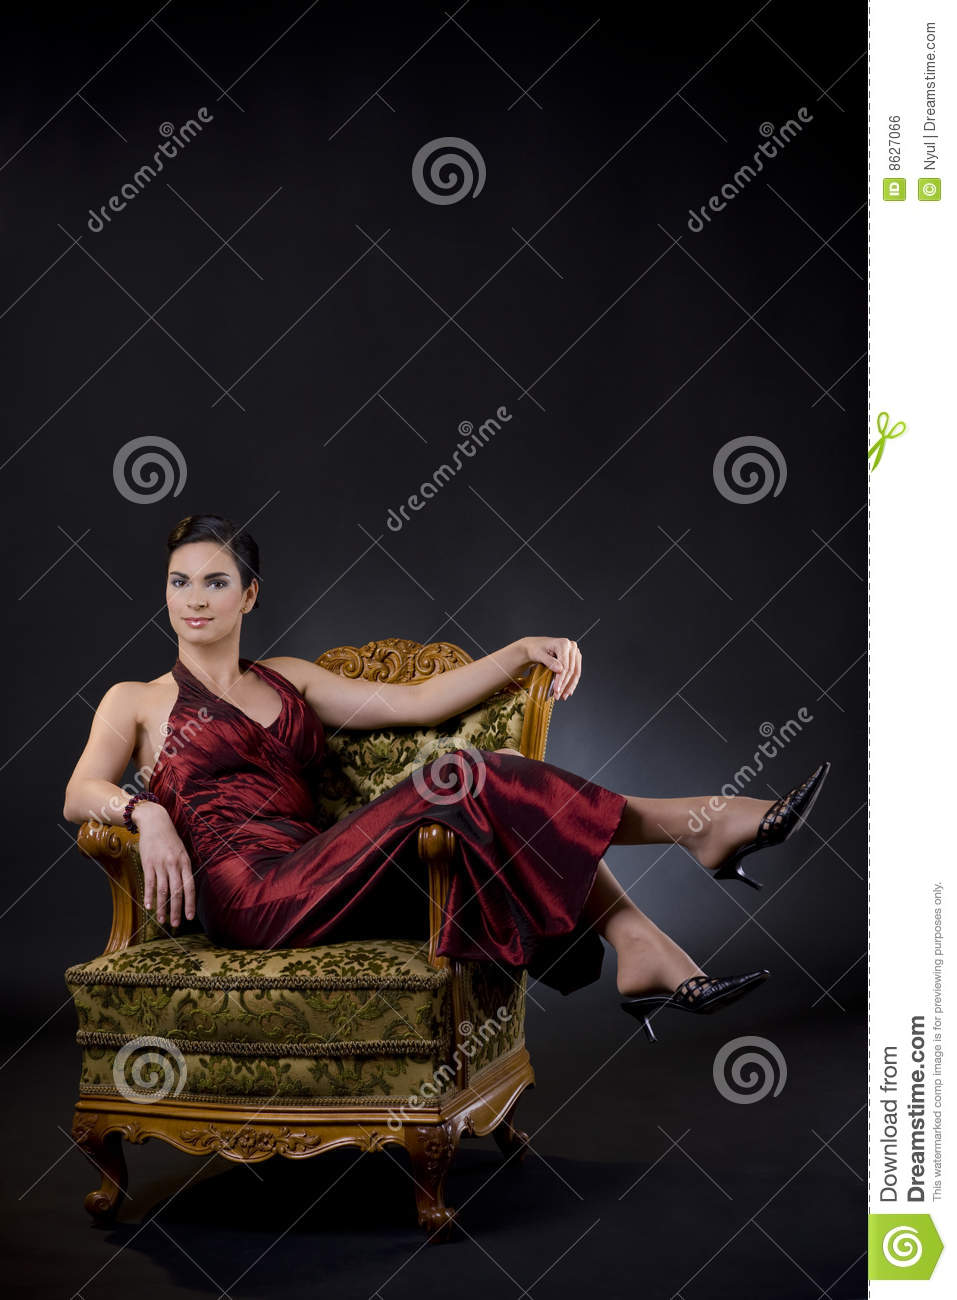 Woman sitting in arm chair royalty free stock image for Sitting in armchair